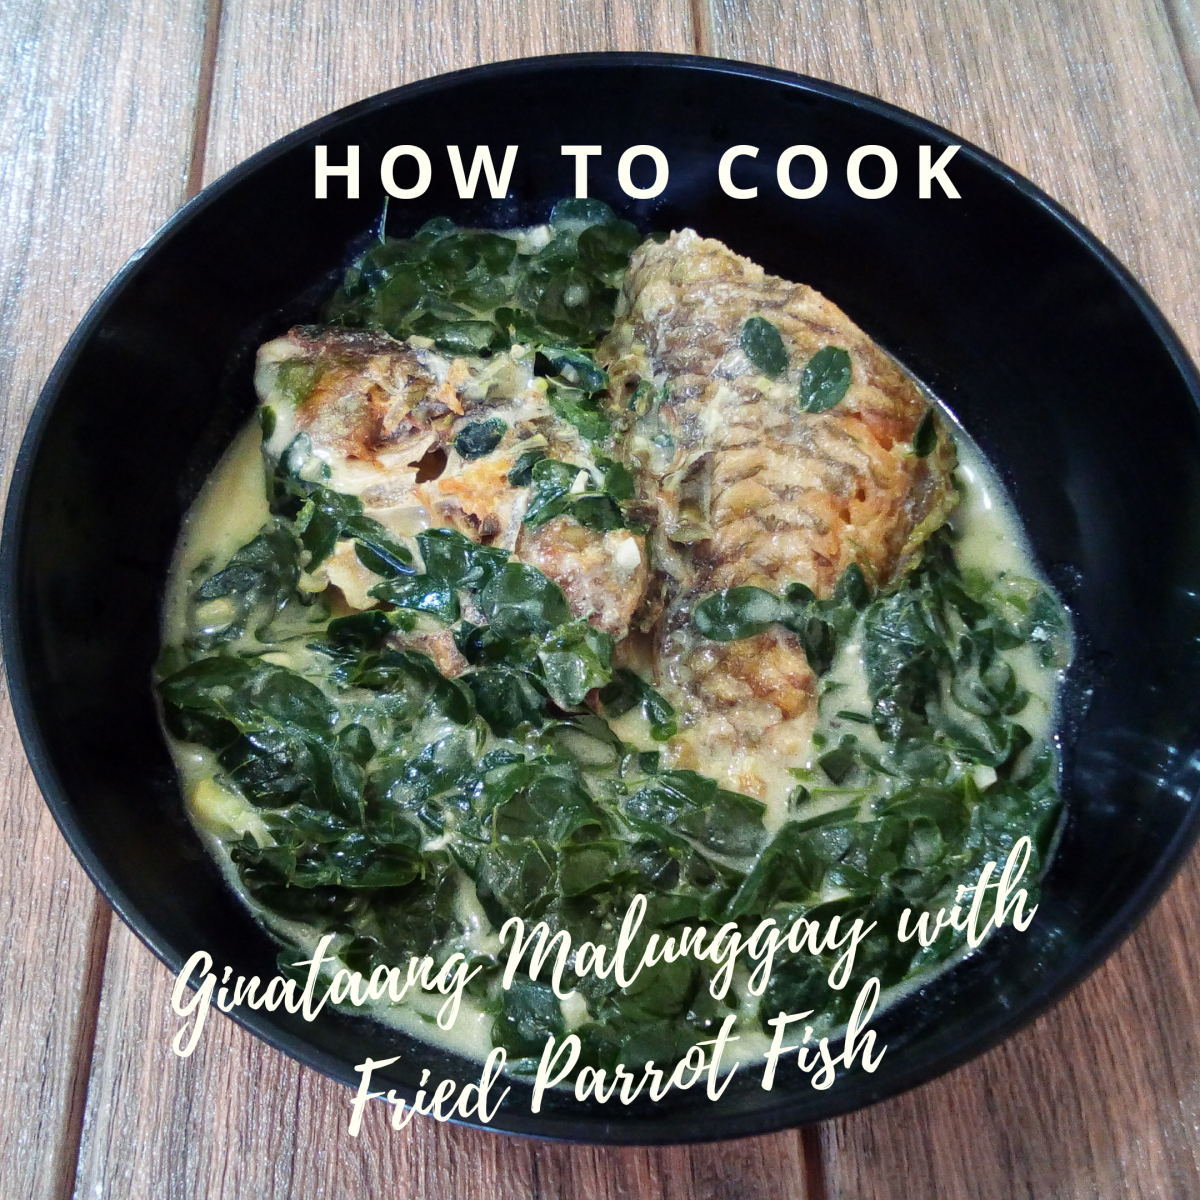 How to Cook Ginataang Malunggay With Fried Parrotfish